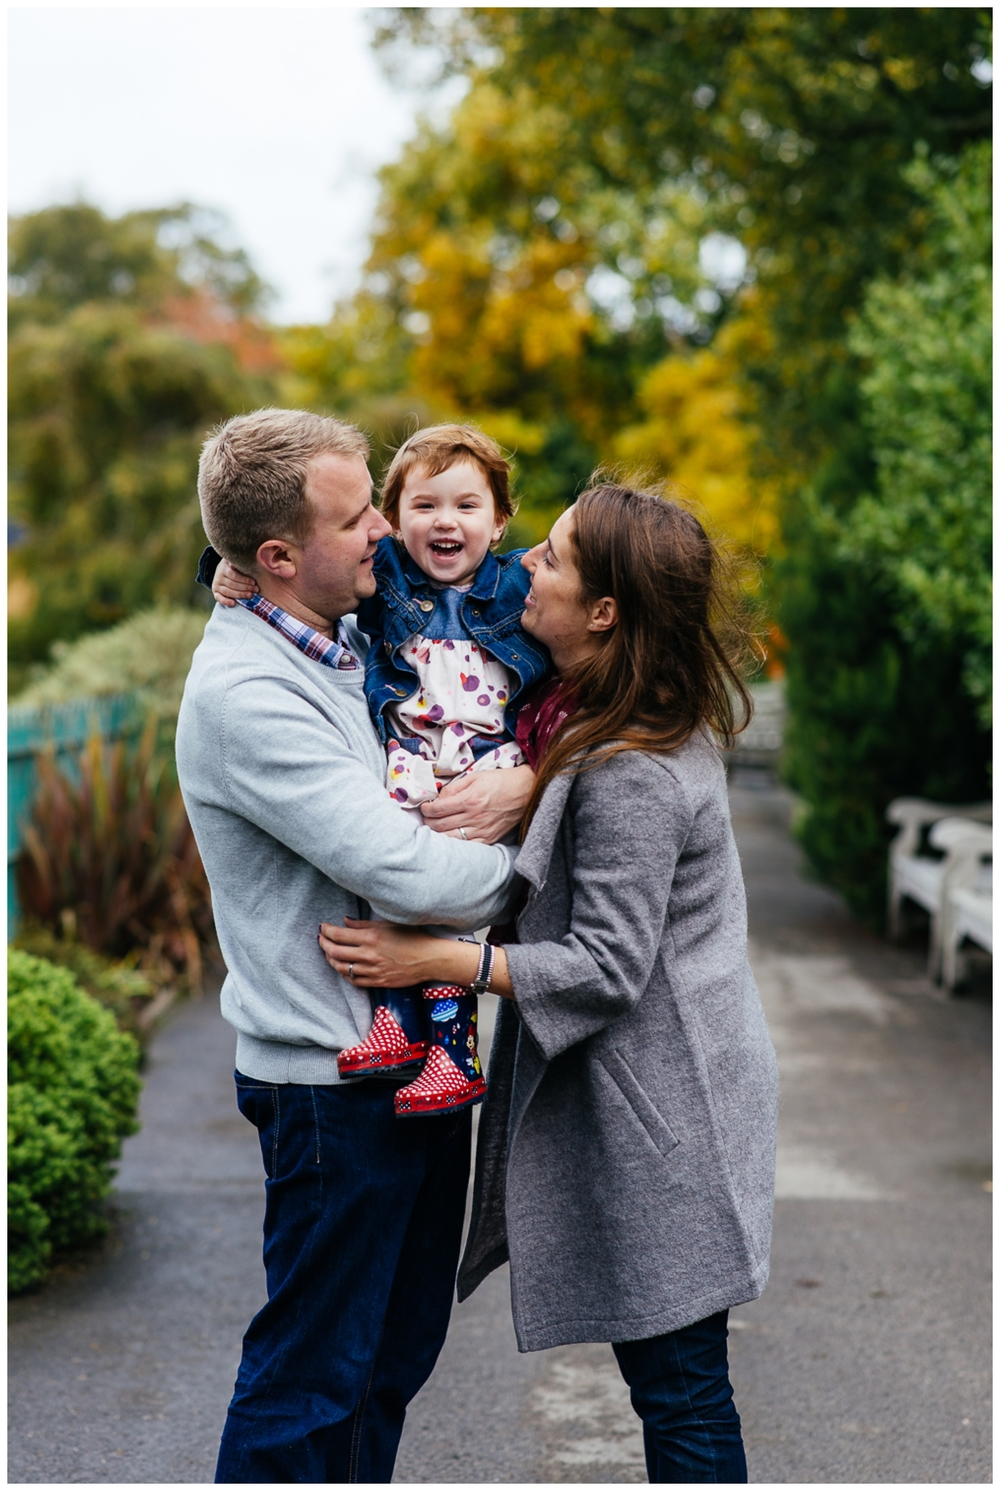 Autumn-family-portraits-birmingham-photographer_0034.jpg